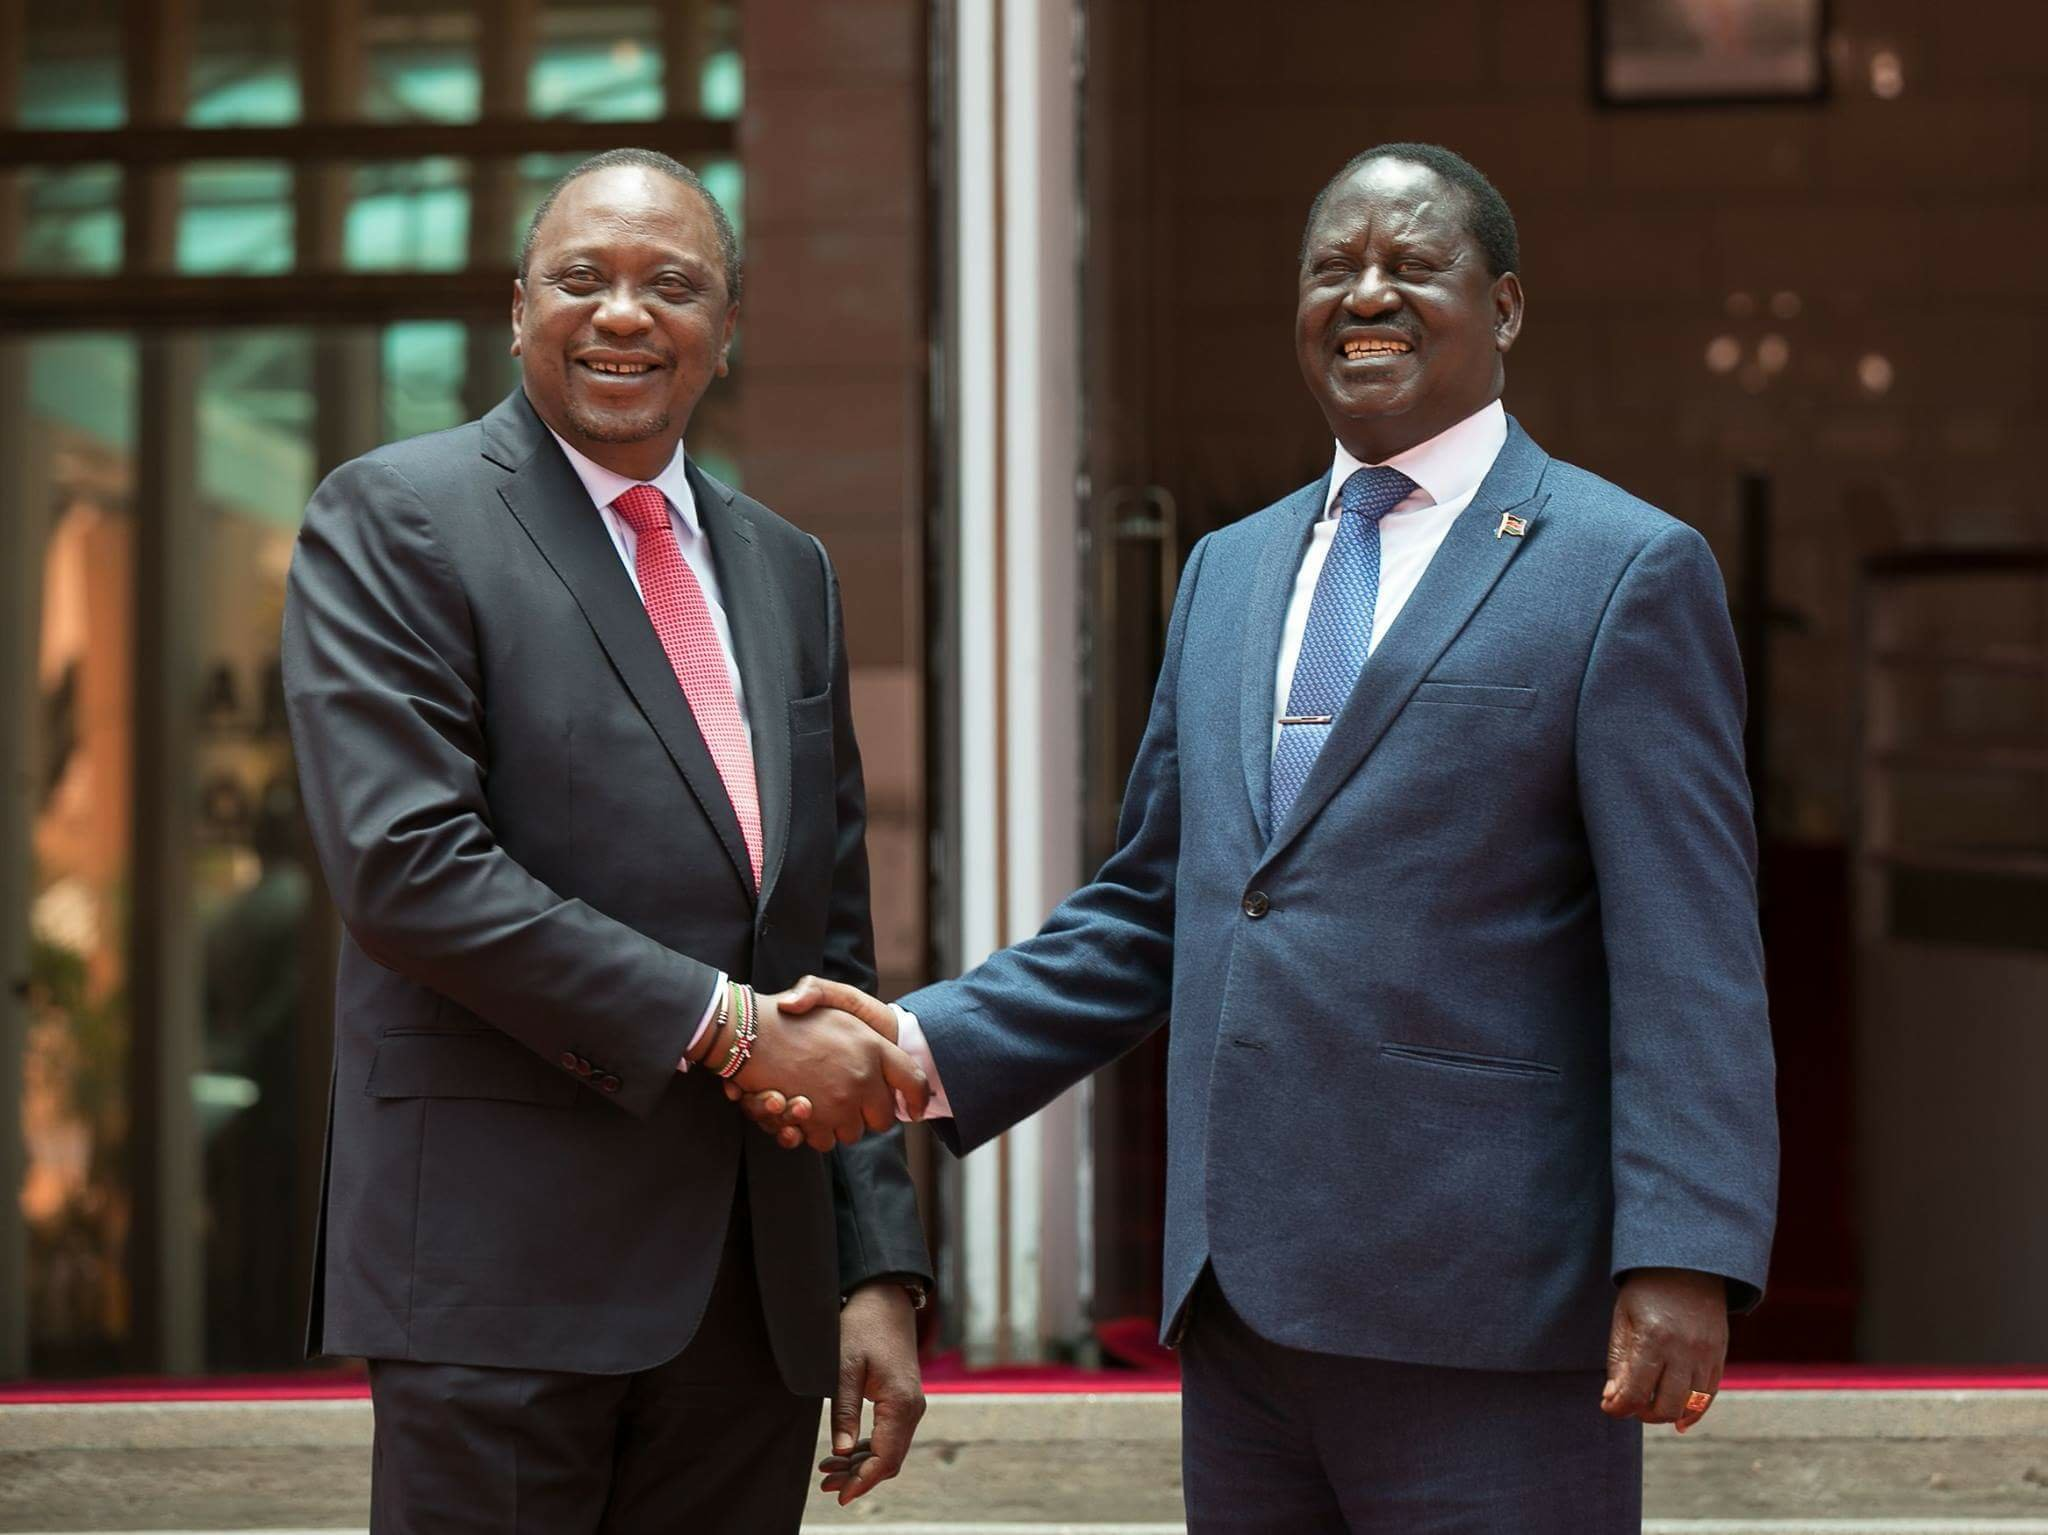 About a handshake: what we can glean from Uhuru-Raila pact